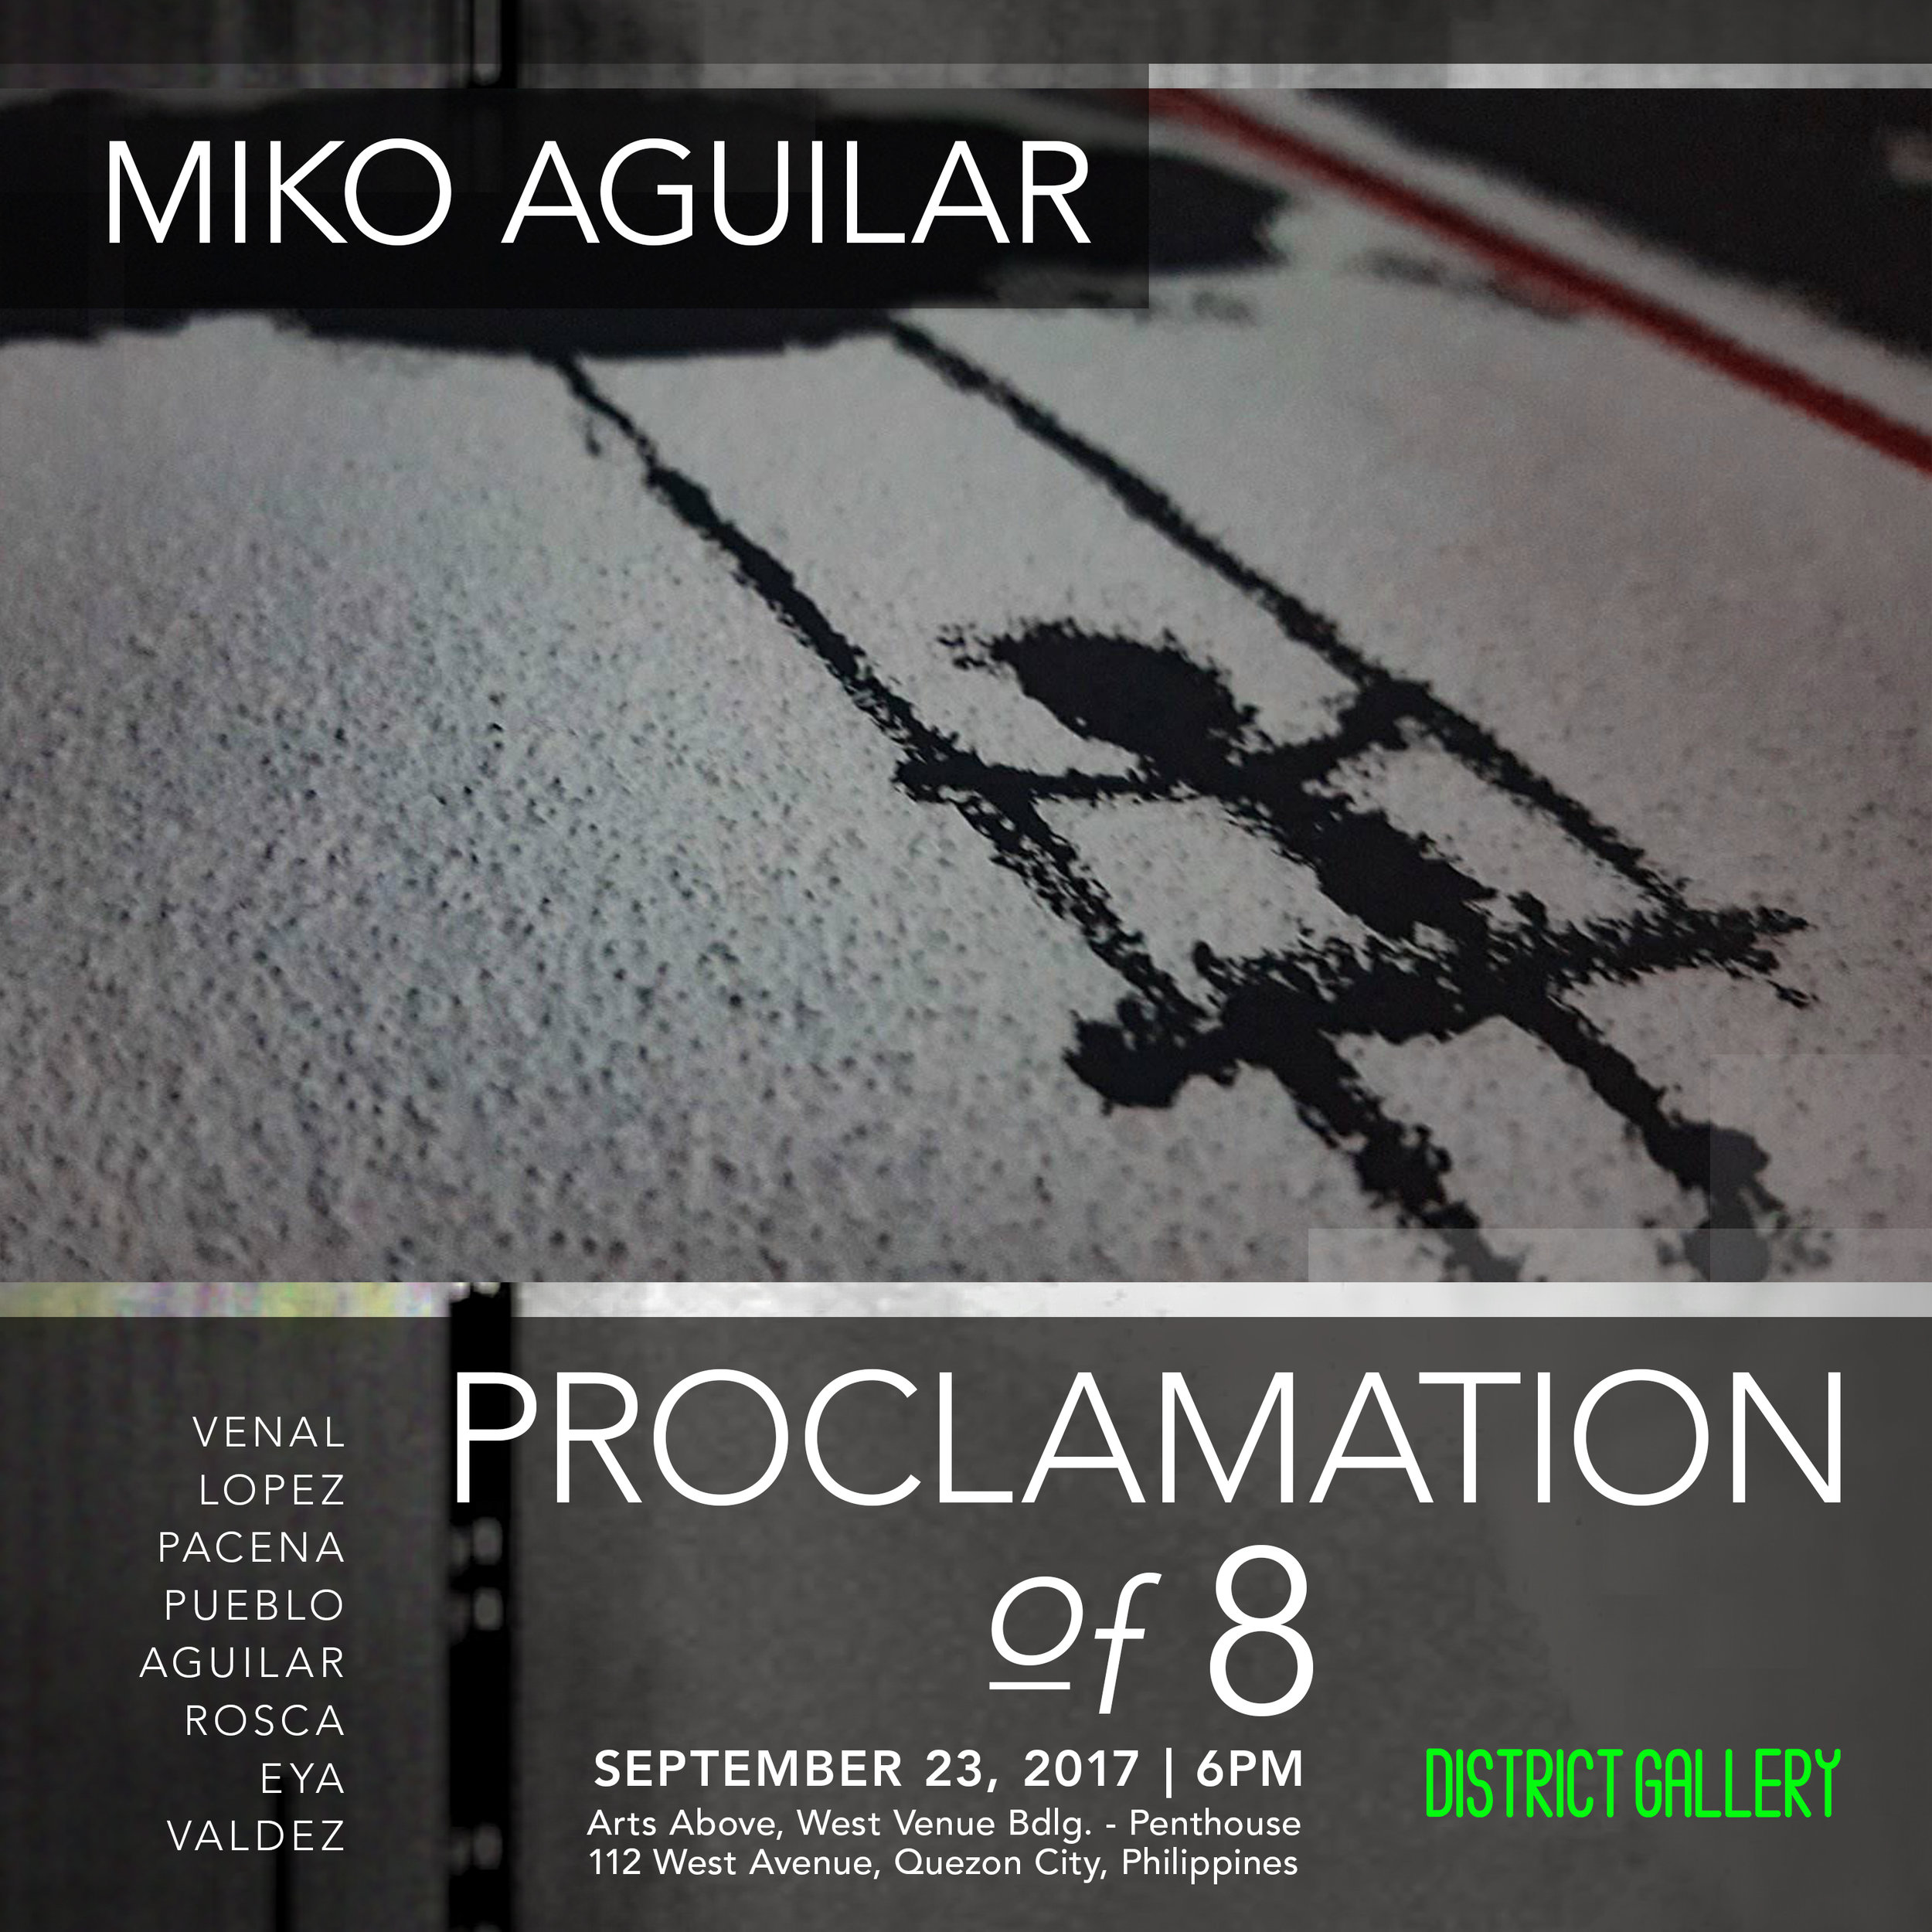 4 PROCLAMATION of Miko Aguilar.jpg